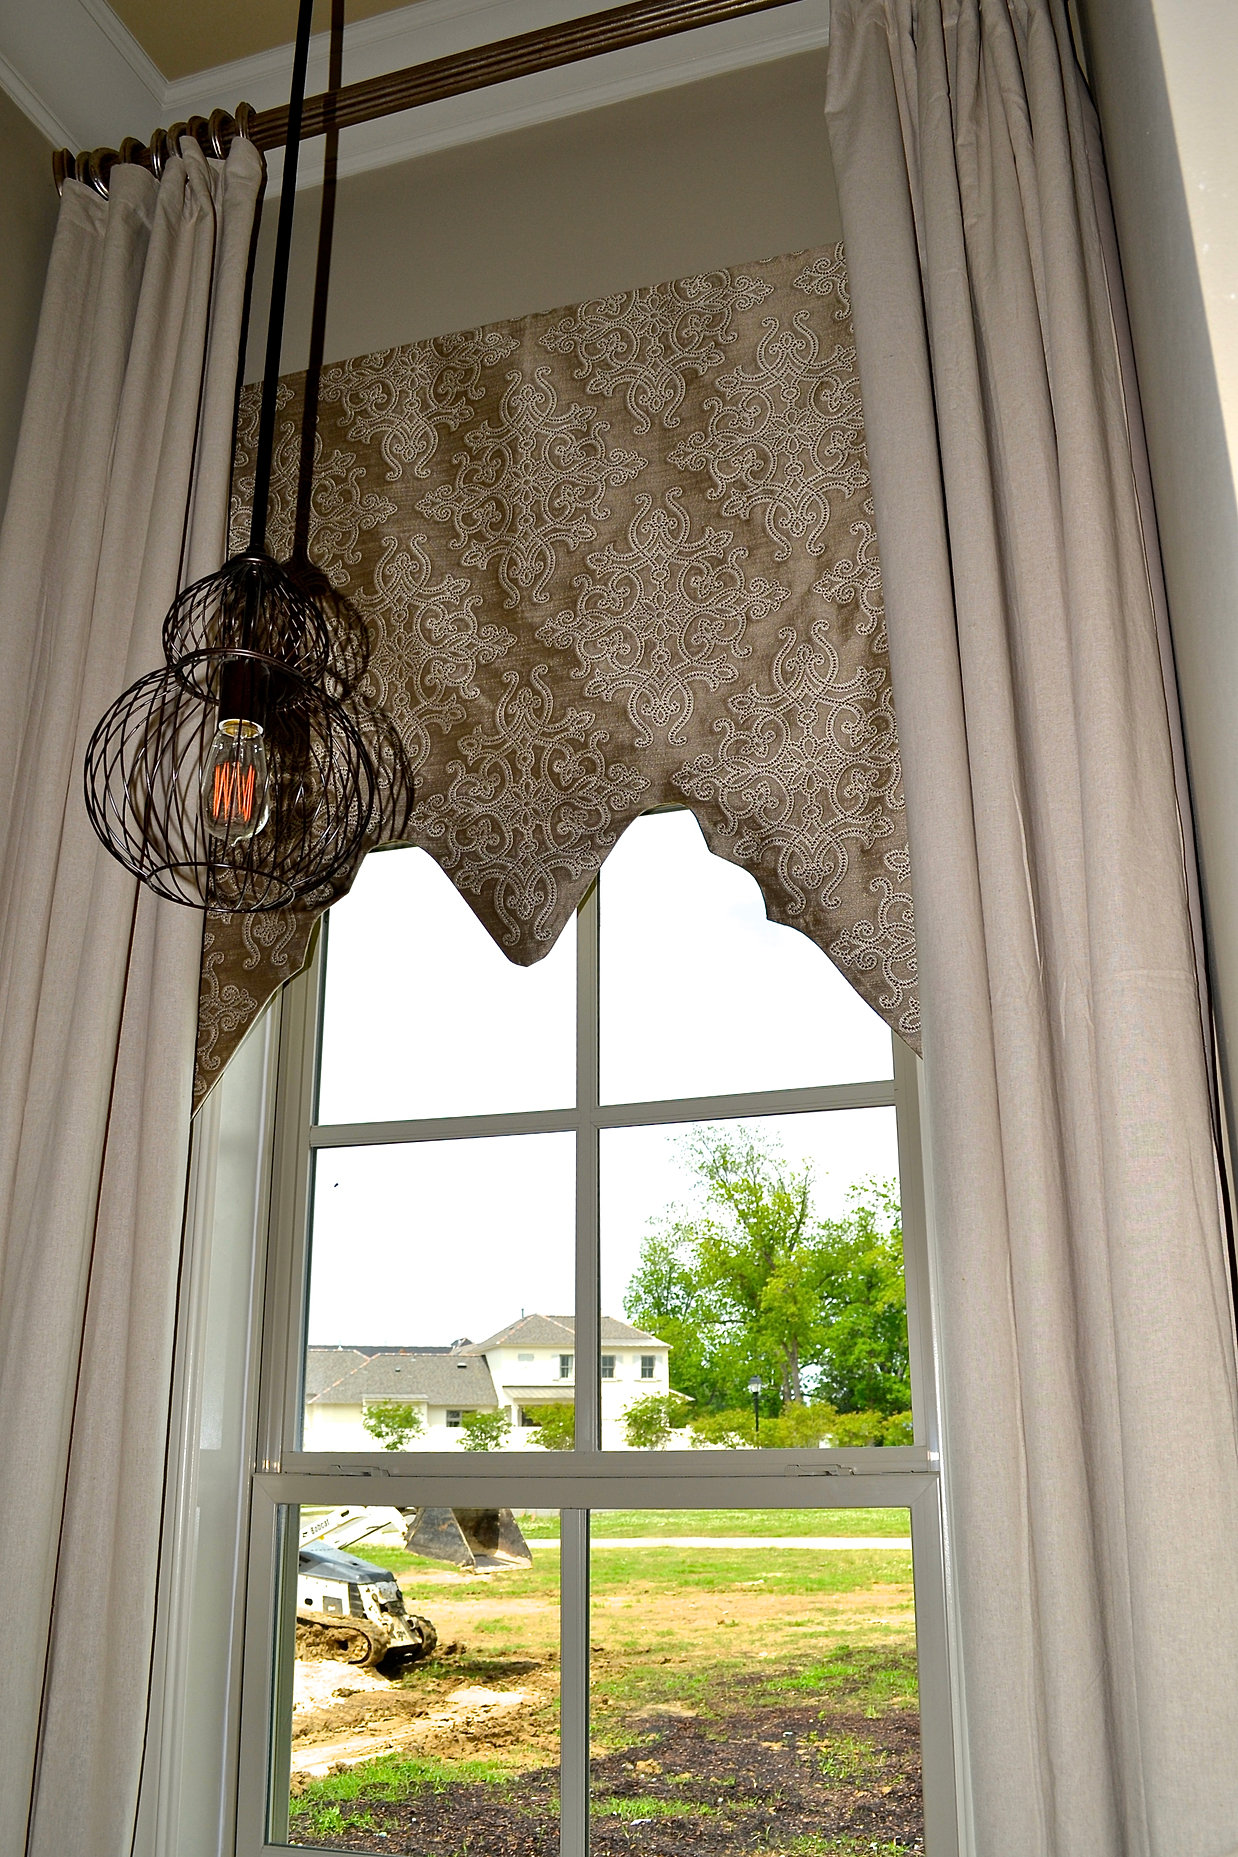 baton rouge c drapes window treatments bedding multi zi valances curtains home dillards